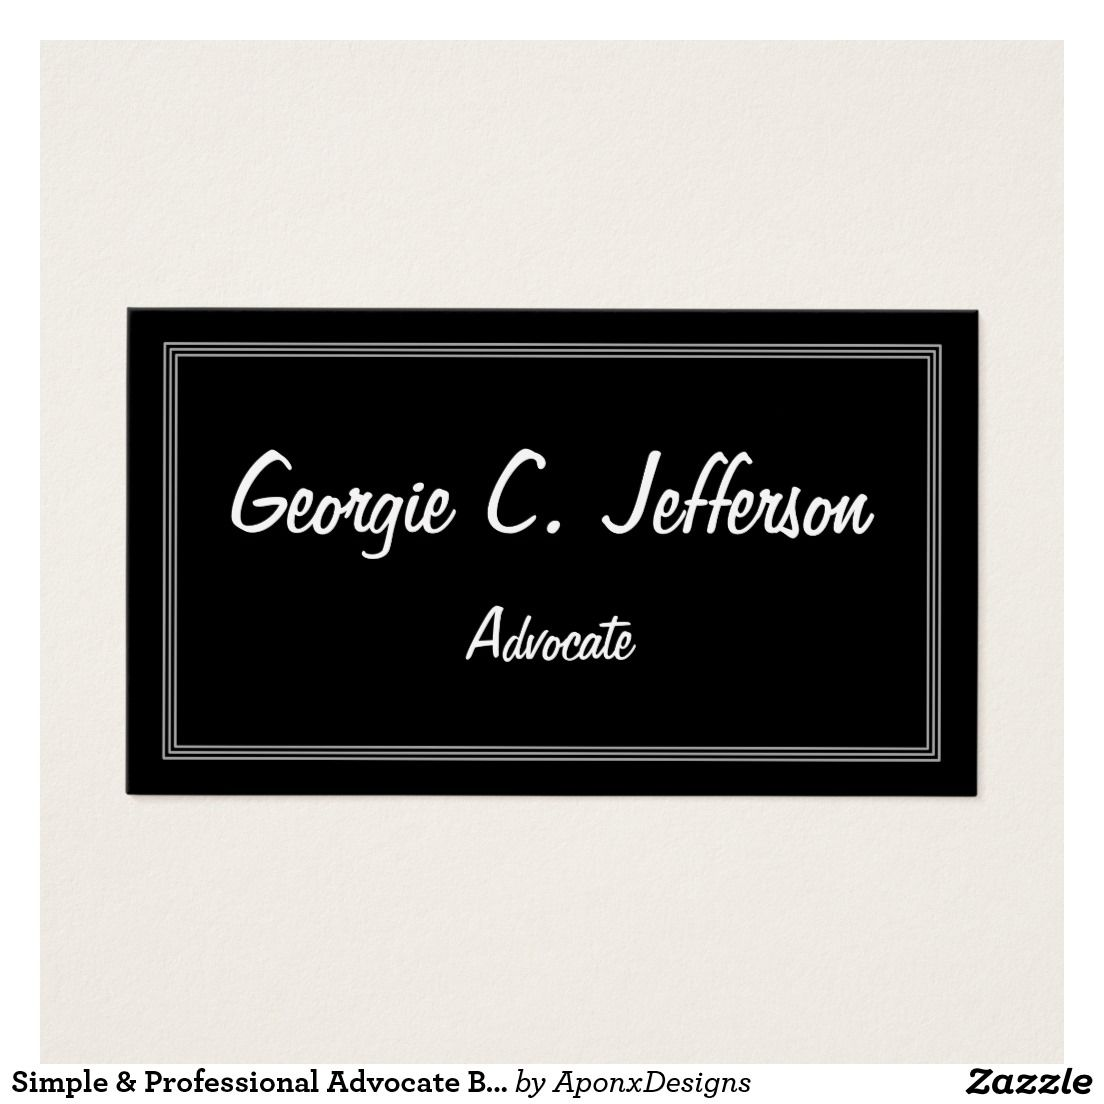 Simple & Professional Advocate Business Card | Customizable Business ...